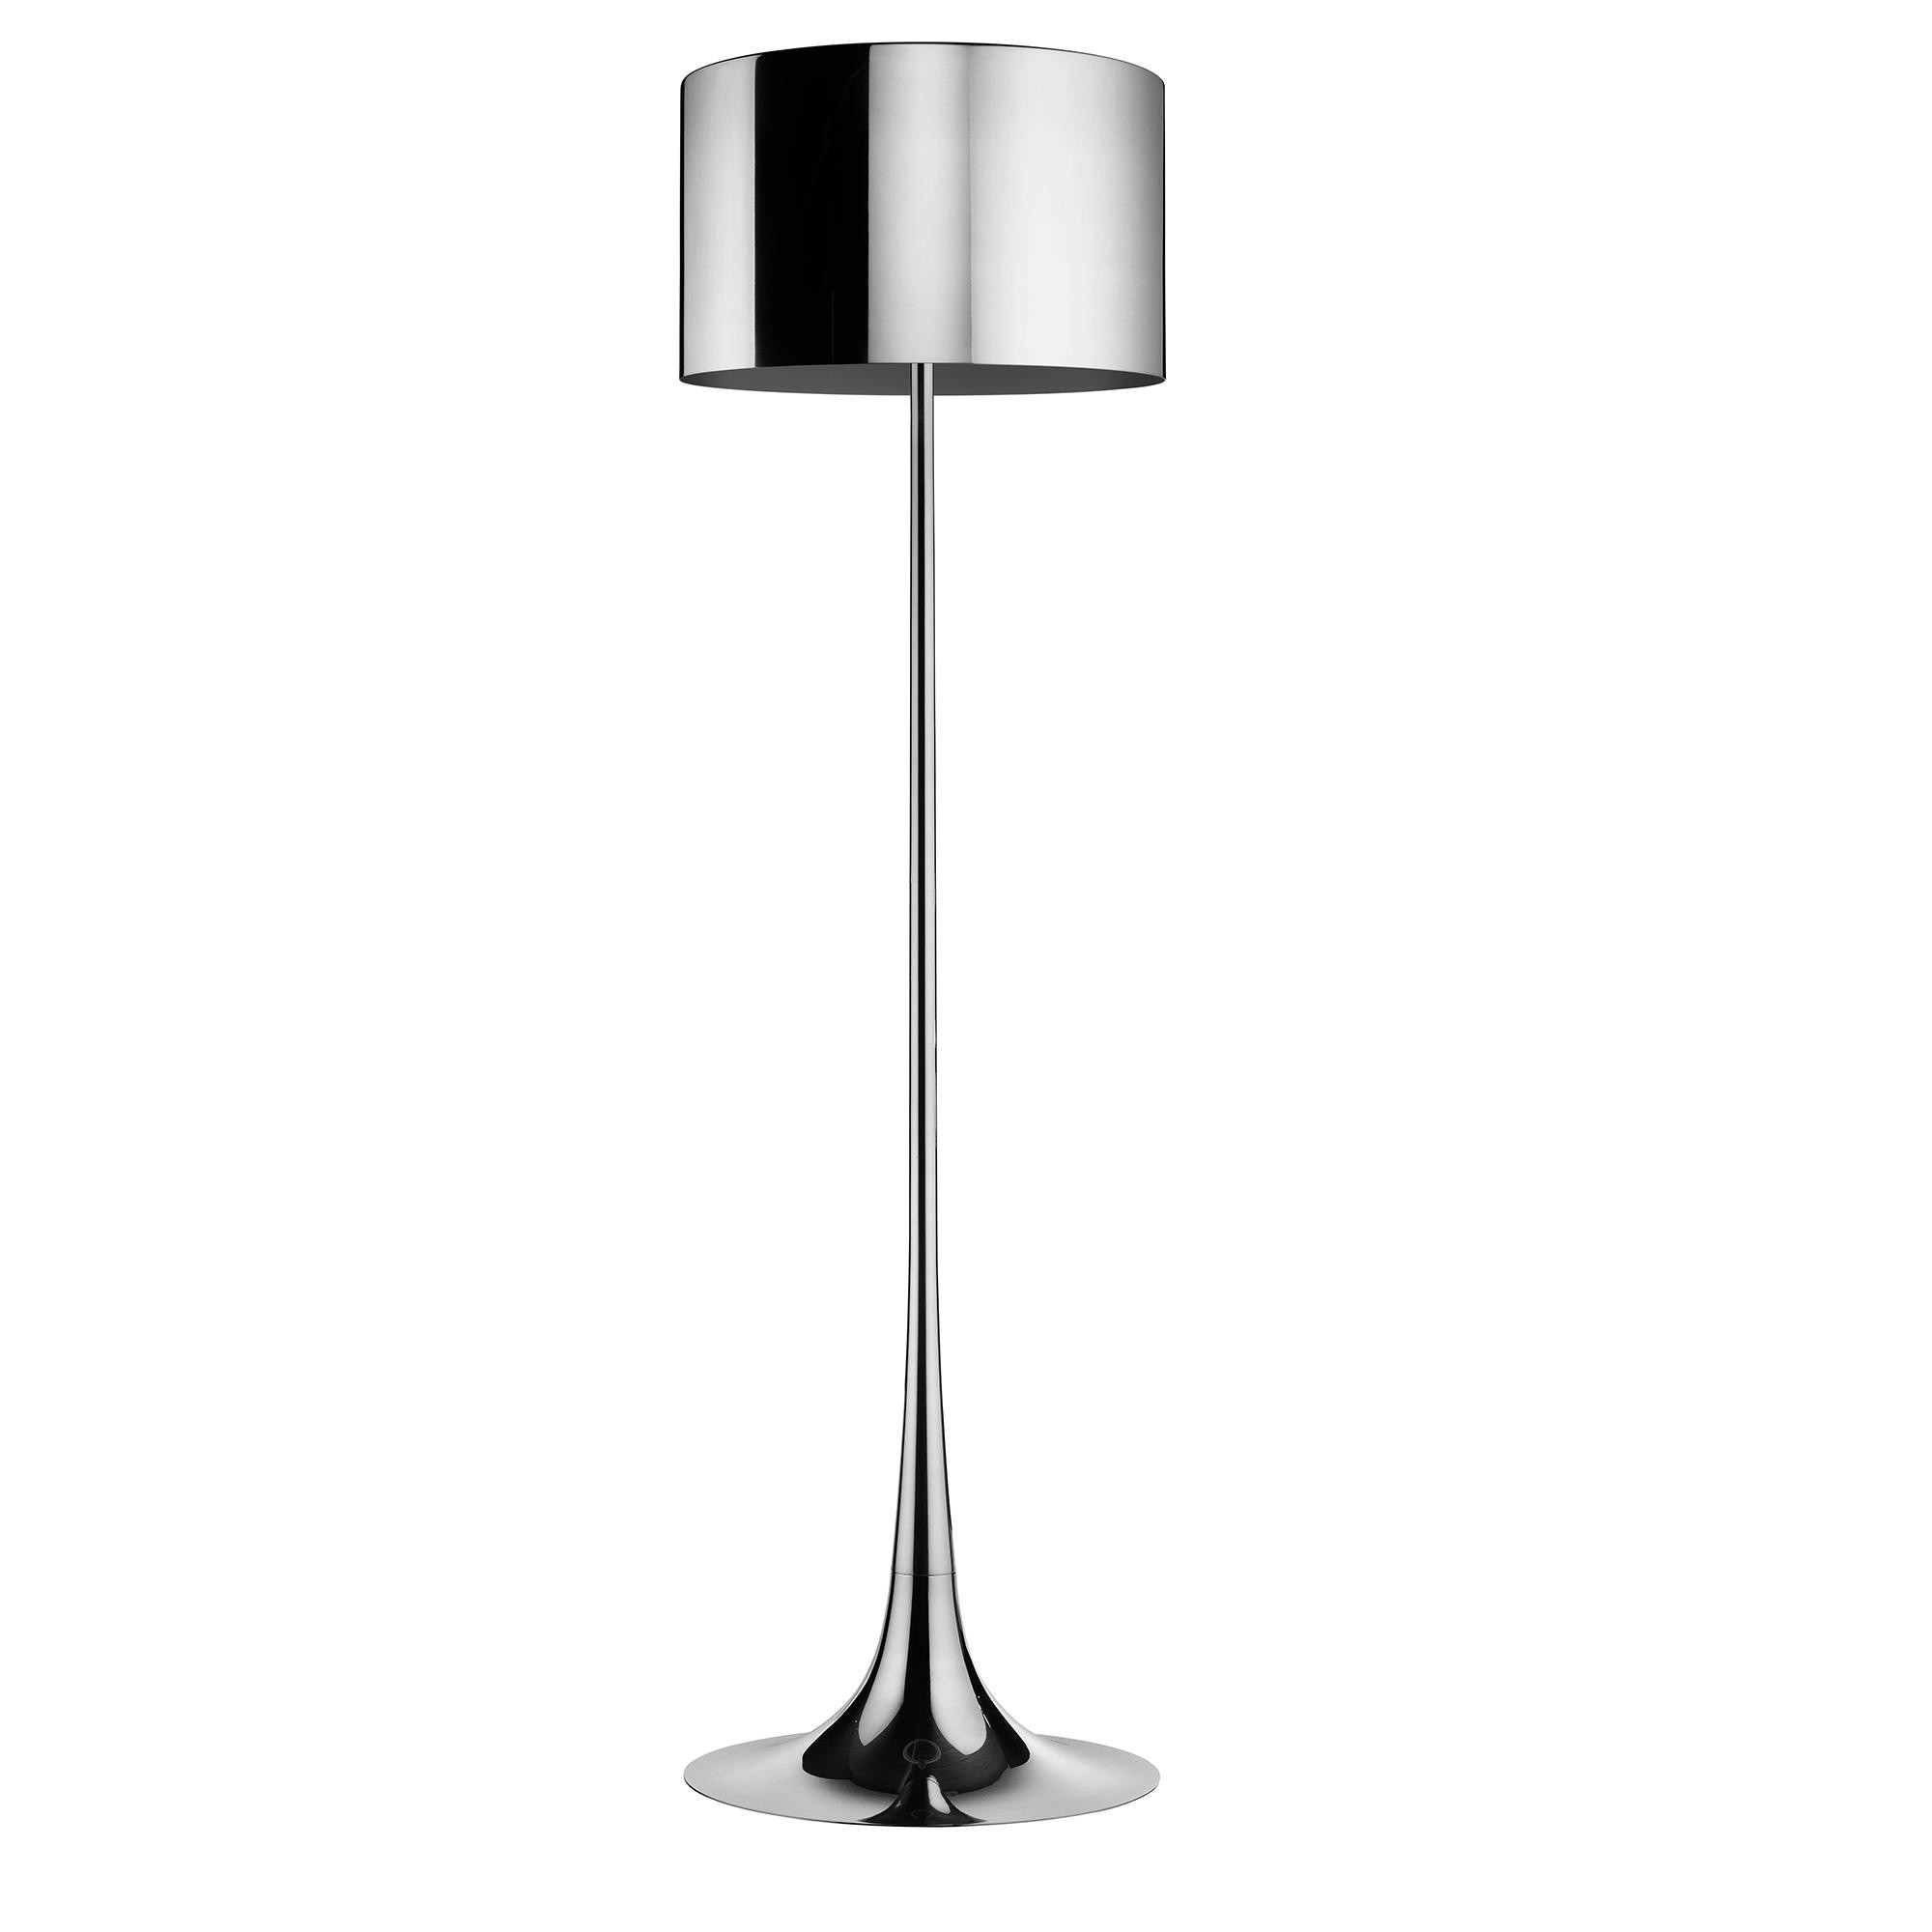 Flos Spun Light F Floor Lamp | AmbienteDirect